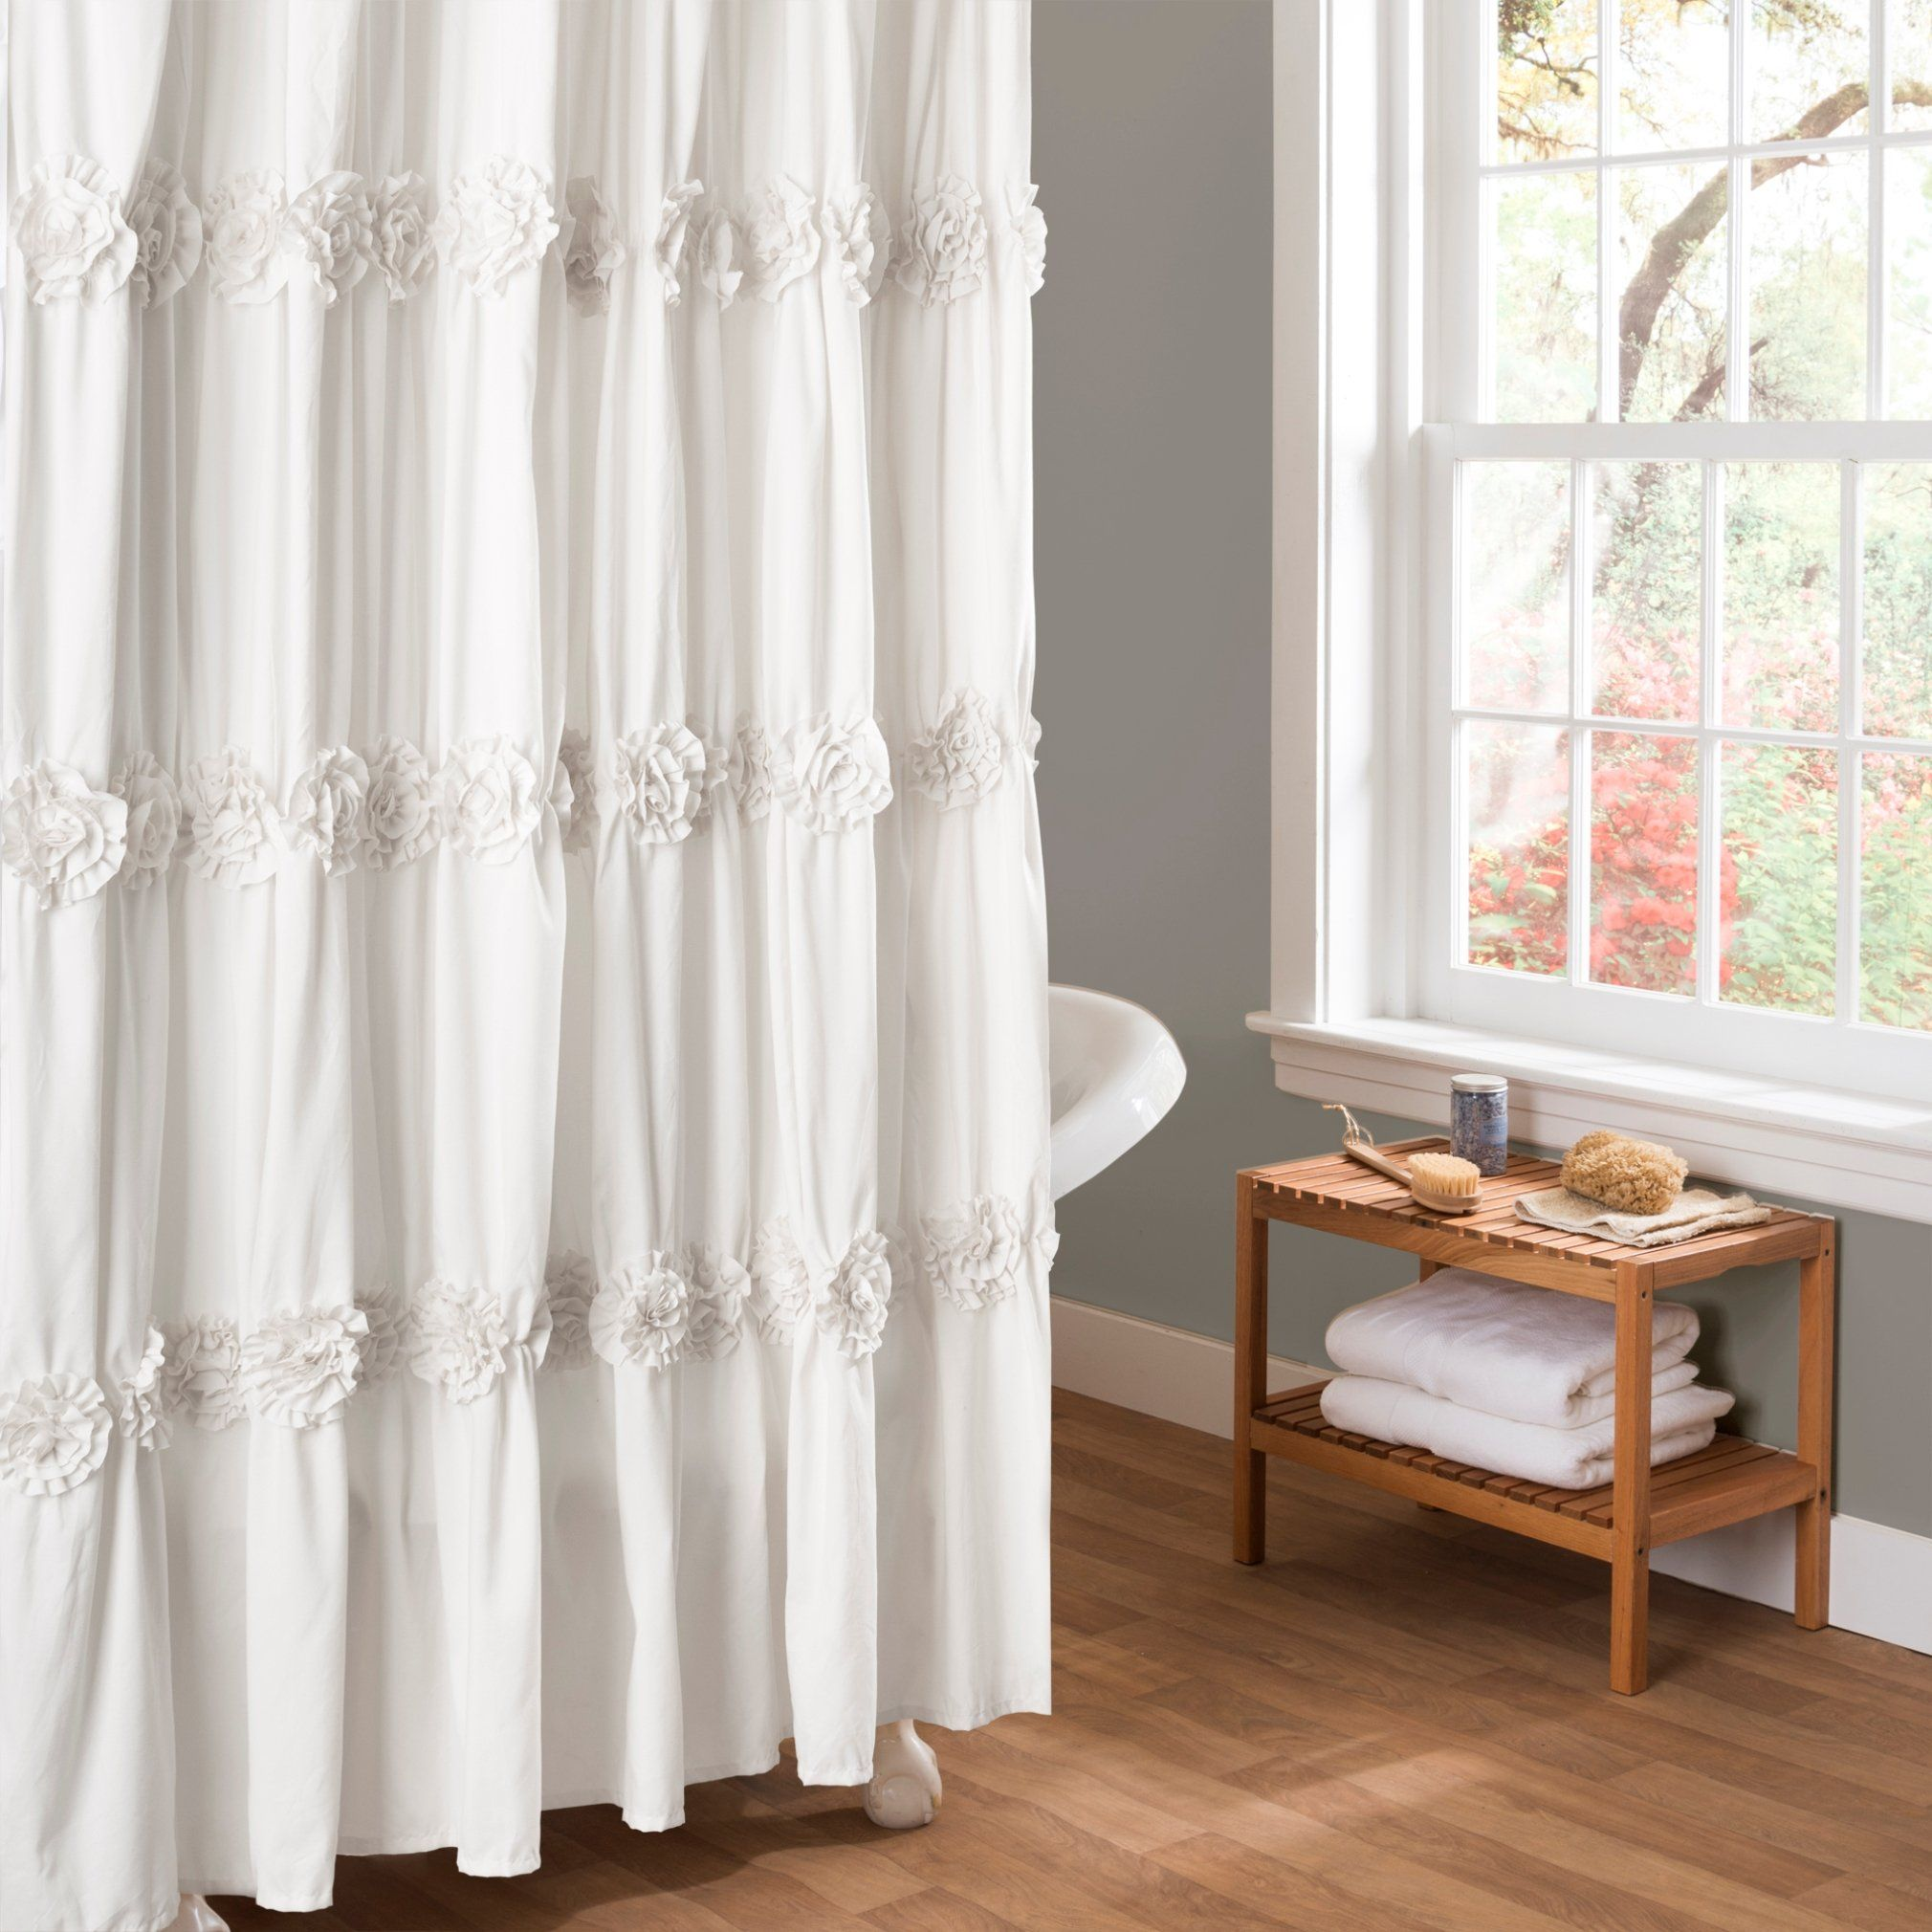 Best Shower Curtains 2020 Luxury Elegant Ruffle Shower